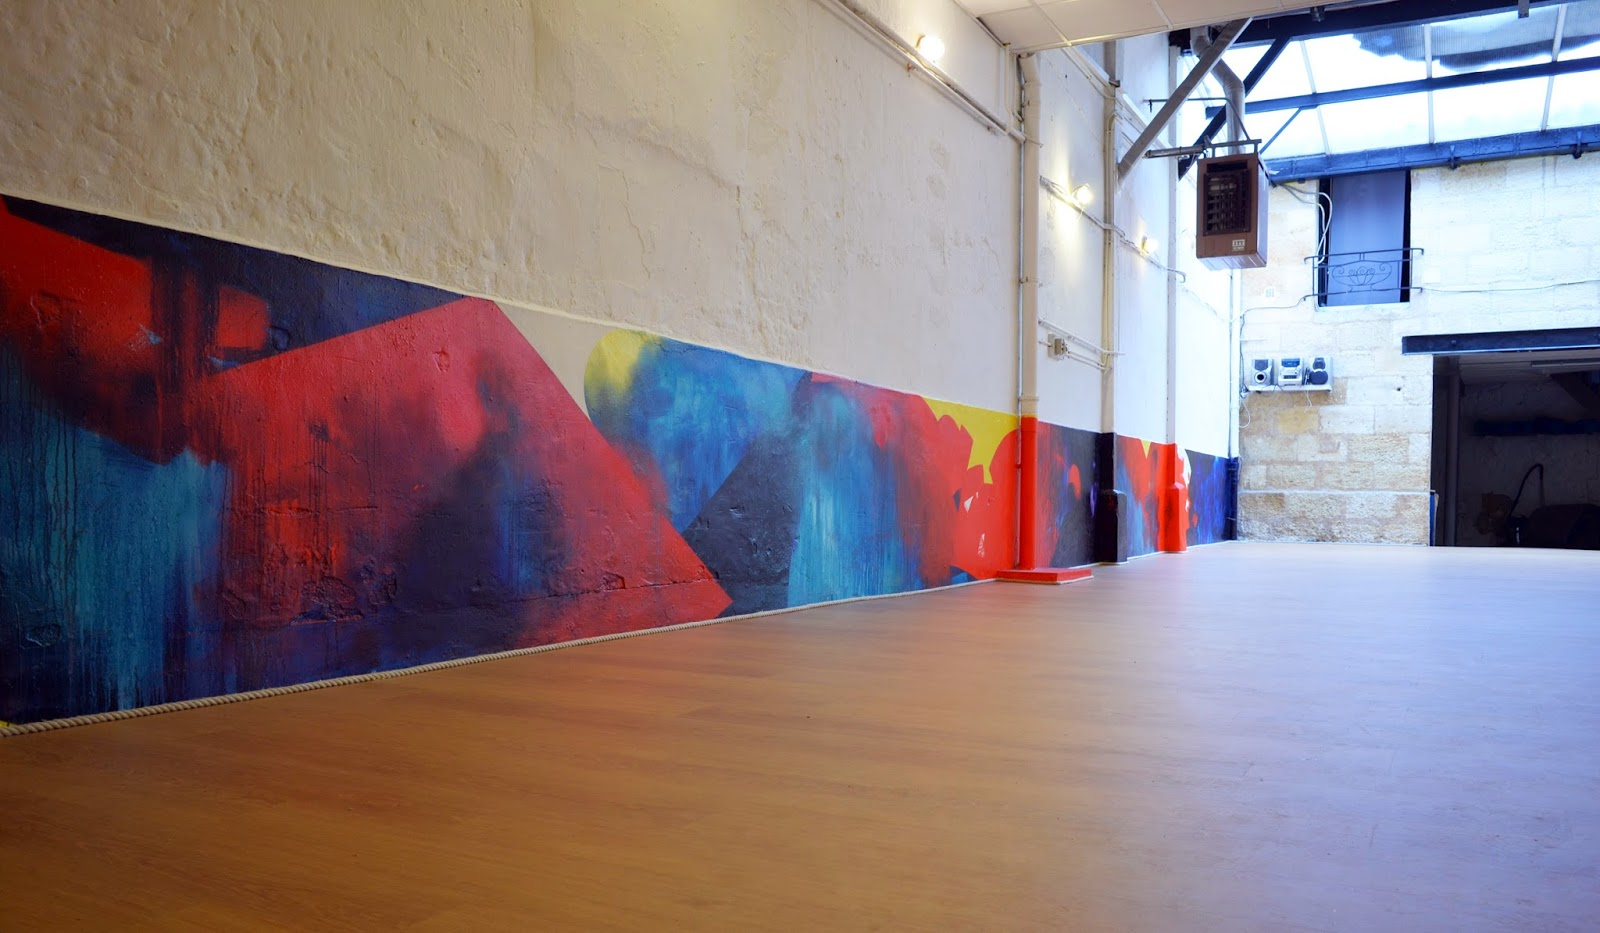 jbb fresque peinture abstraction danse crossfit